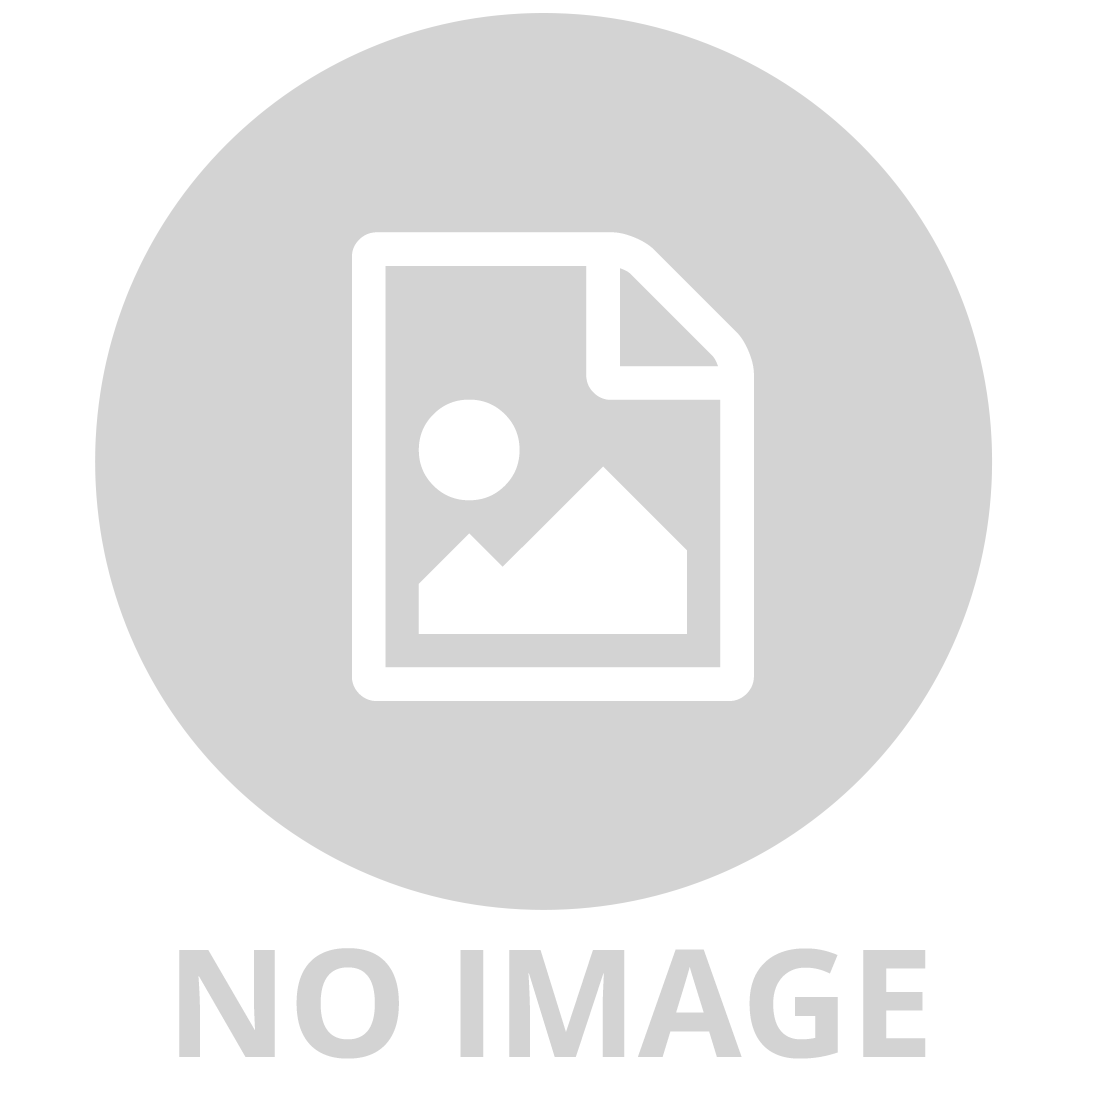 Spyda 1250mm Black/Teak Ceiling Fan SPY1253NTK